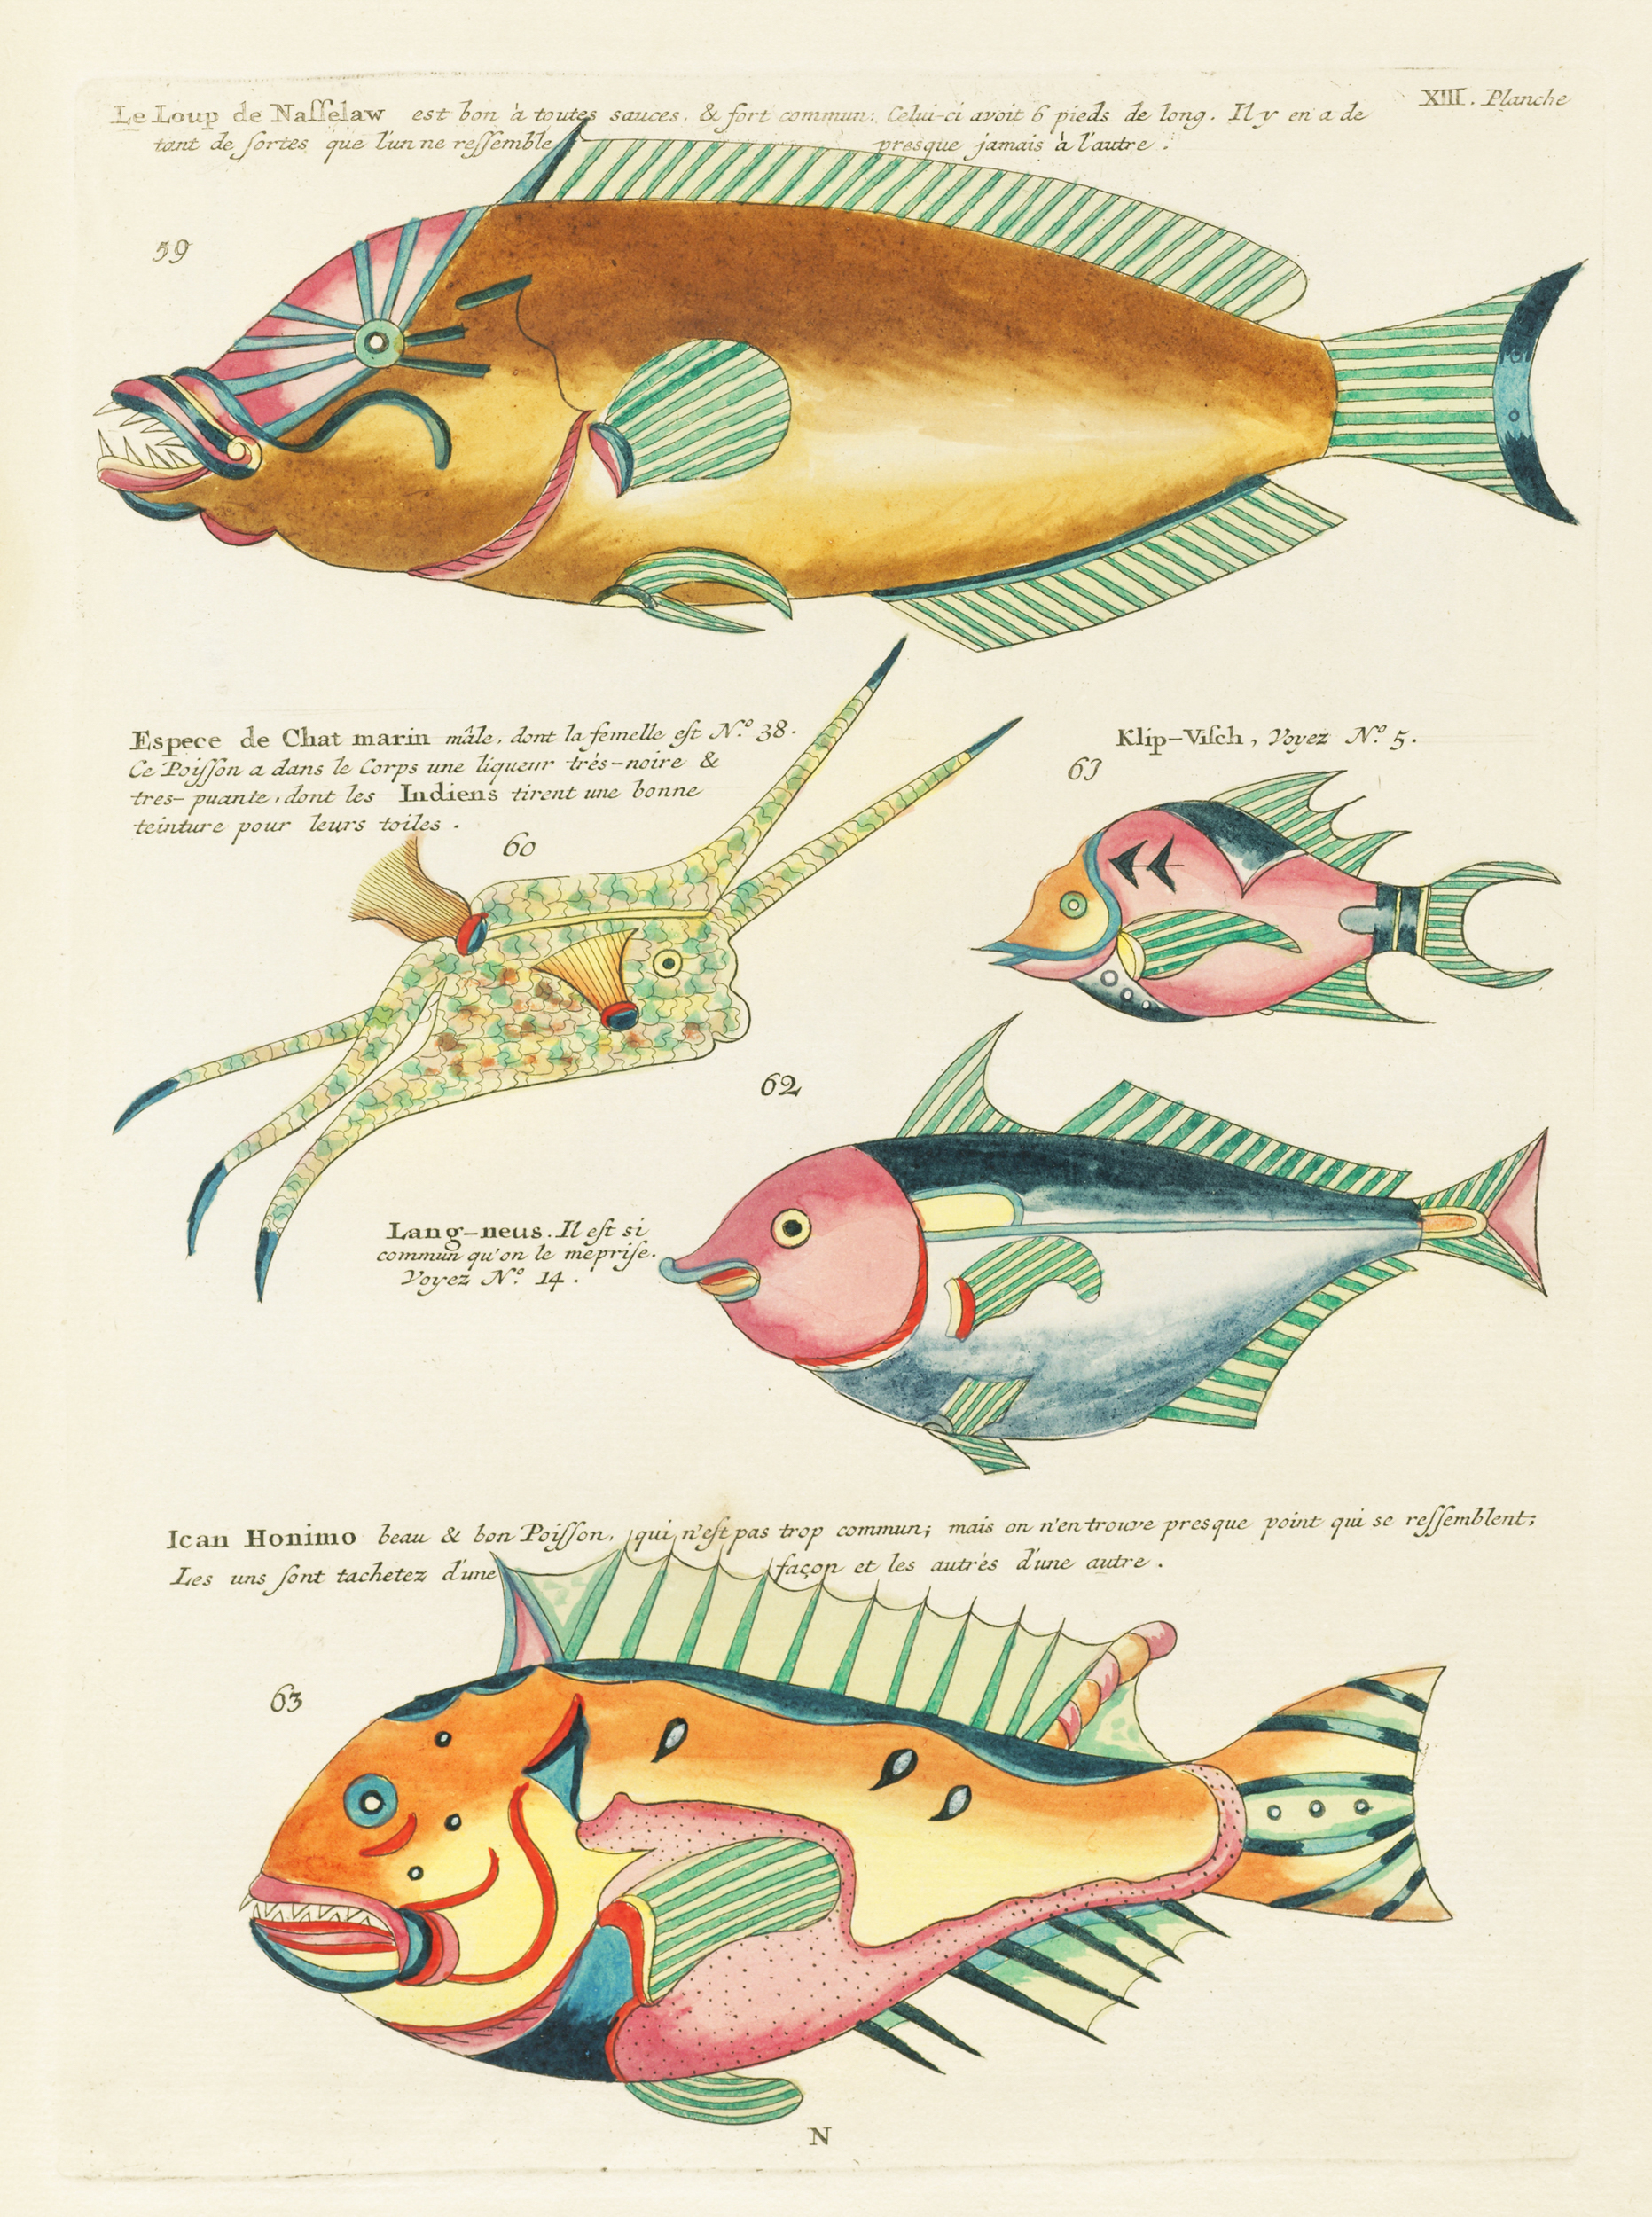 Filesurreal Illustration Of Fishes And Crabs Found In